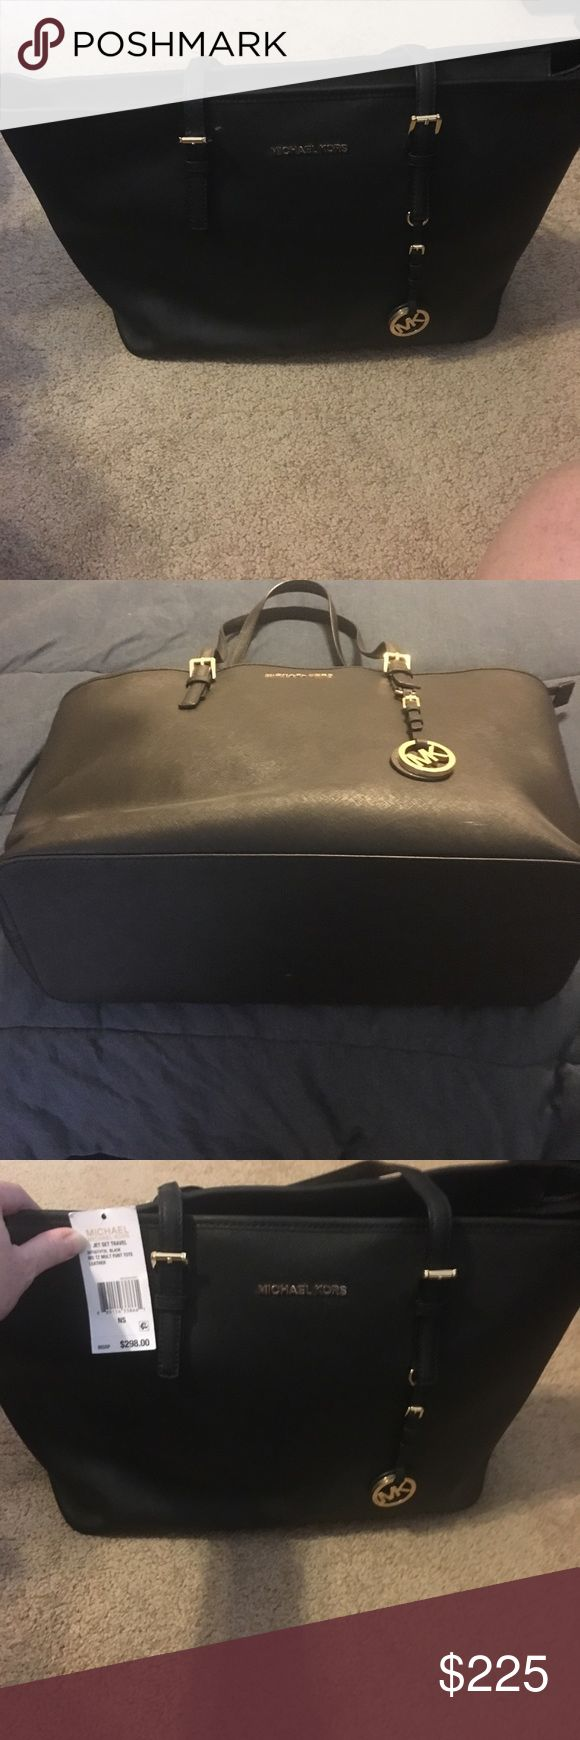 Michael Kors Jet Set Travel Tote, New with Tags This jet set travel tote carries everything you need and is amazing. In black leather with room for a computer and all your goodies when you are traveling. I am selling because I found it too big after I purchased and I was no longer returnable. Let my loss be your gain KORS Michael Kors Bags Laptop Bags